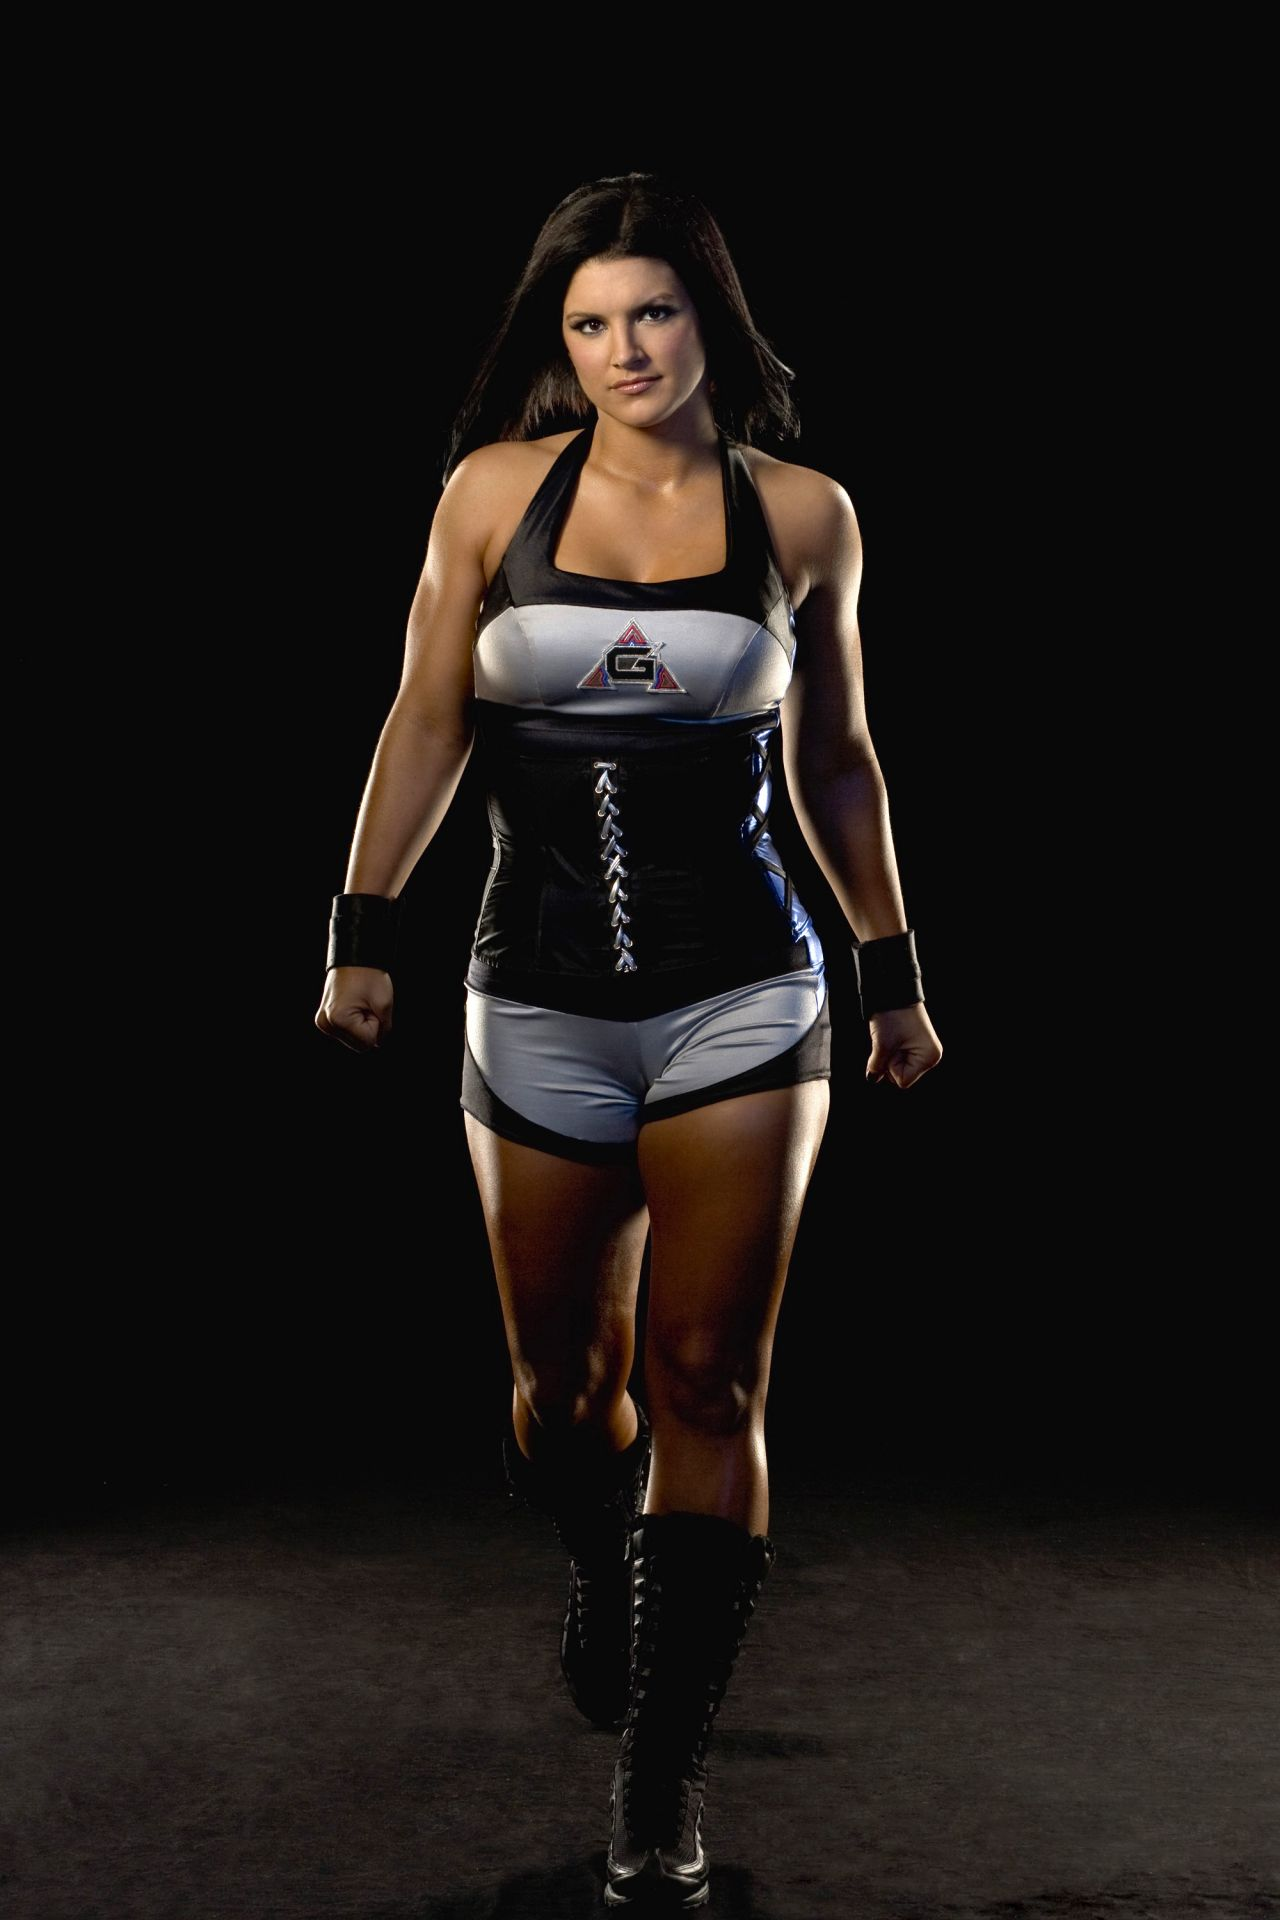 Gina Carano - Promoshoot for American Gladiators - by Paul Drinkwater